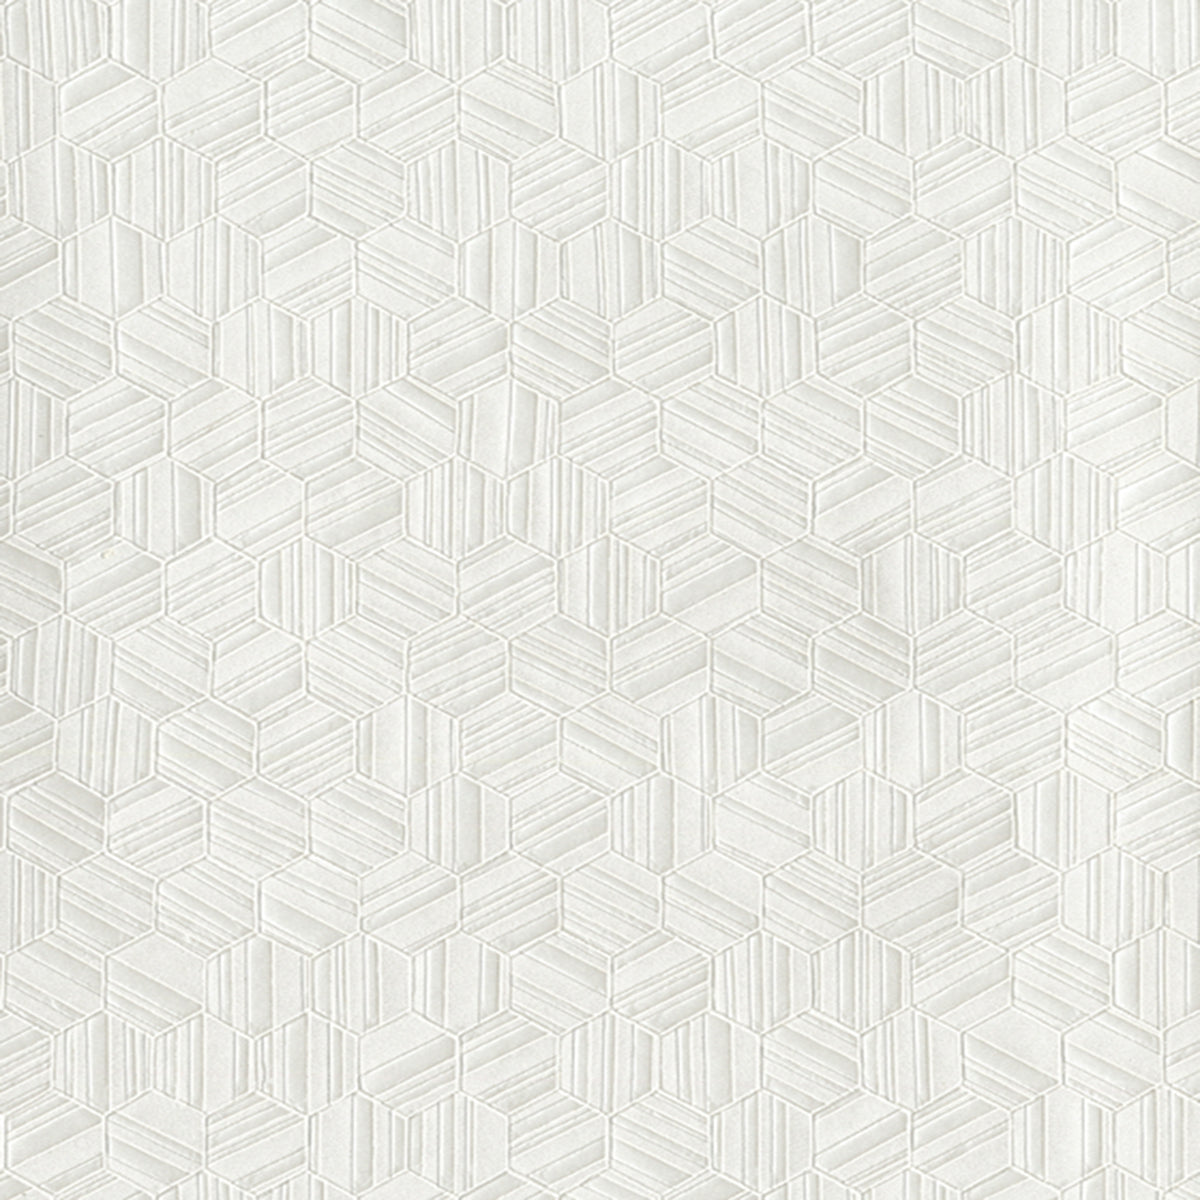 Modern Artisan Vanguard Wallpaper (Geometric)